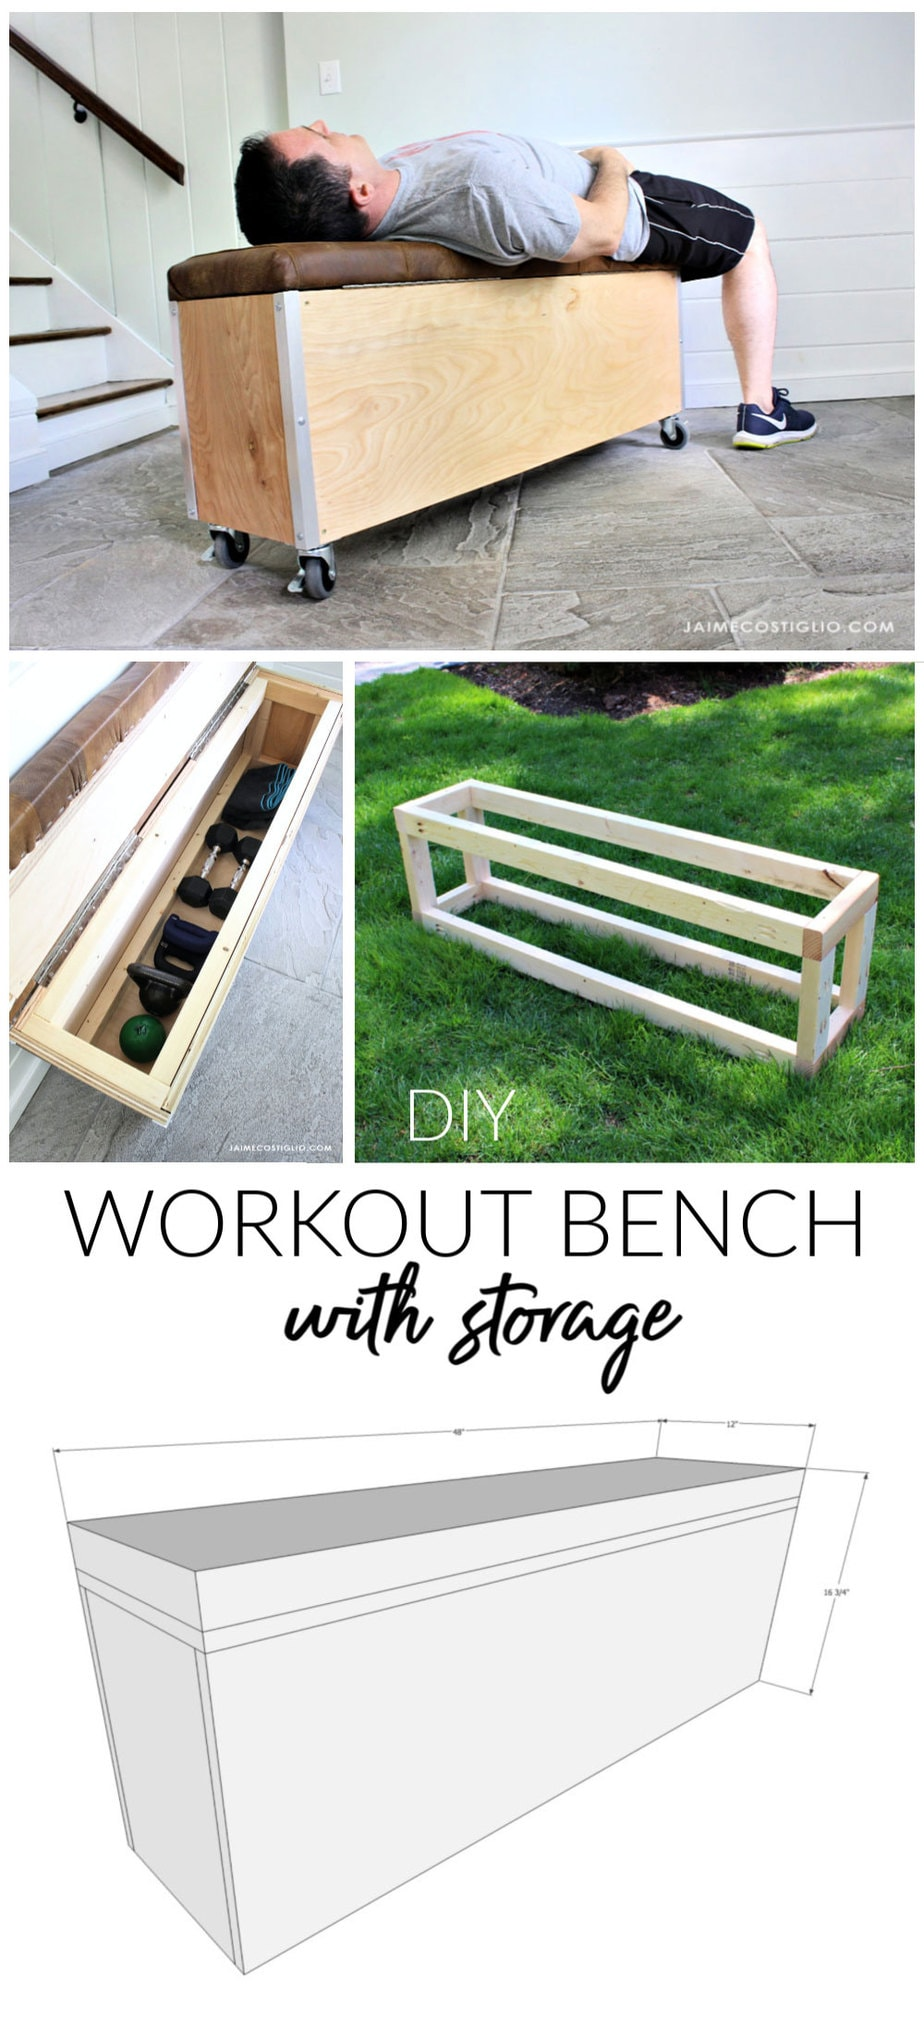 workout bench with storage free plans